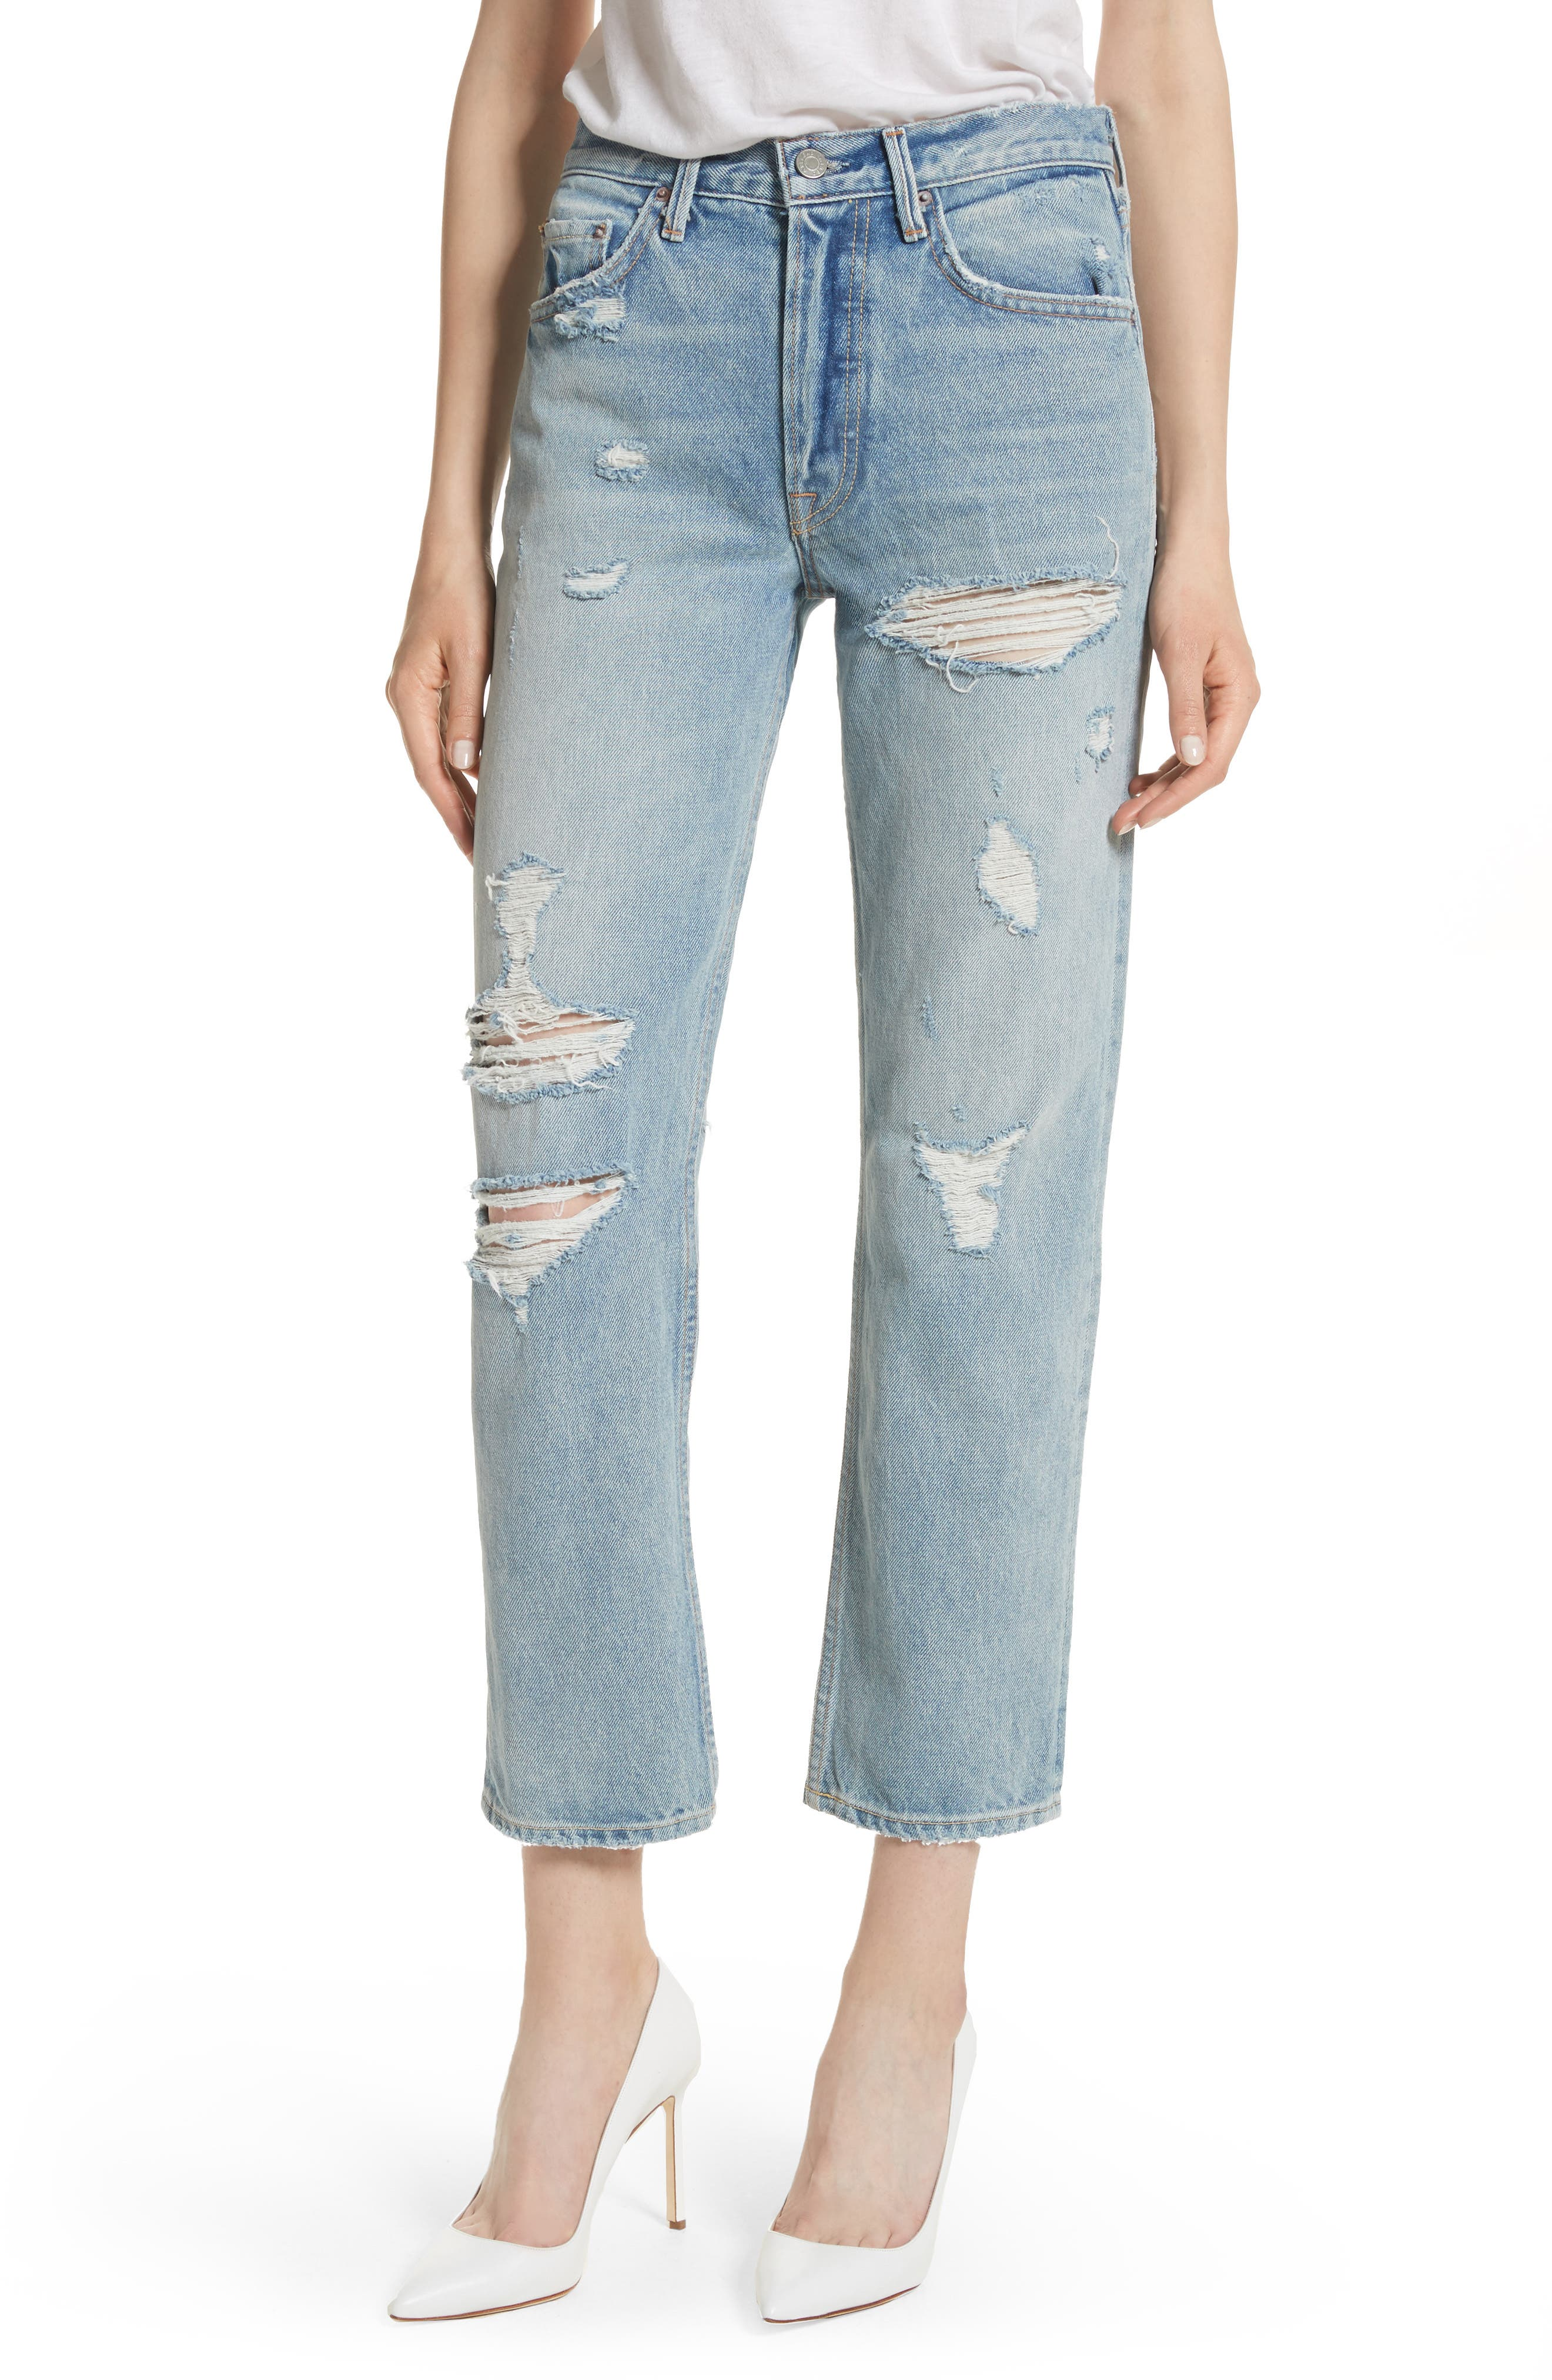 GRLFRND Helena Ripped Rigid High Waist Straight Jeans (Reese)